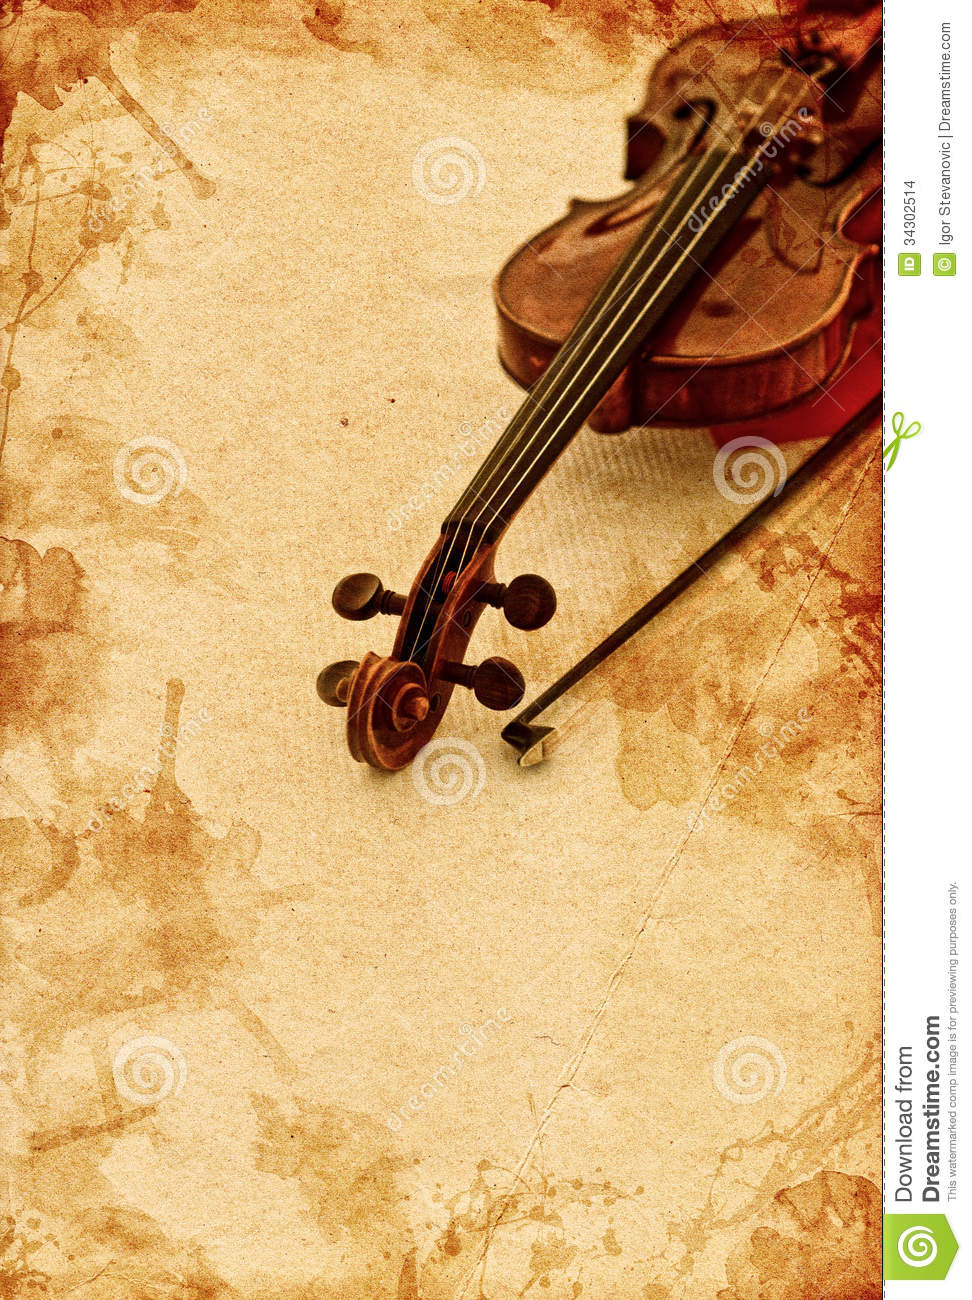 Essay on classical music